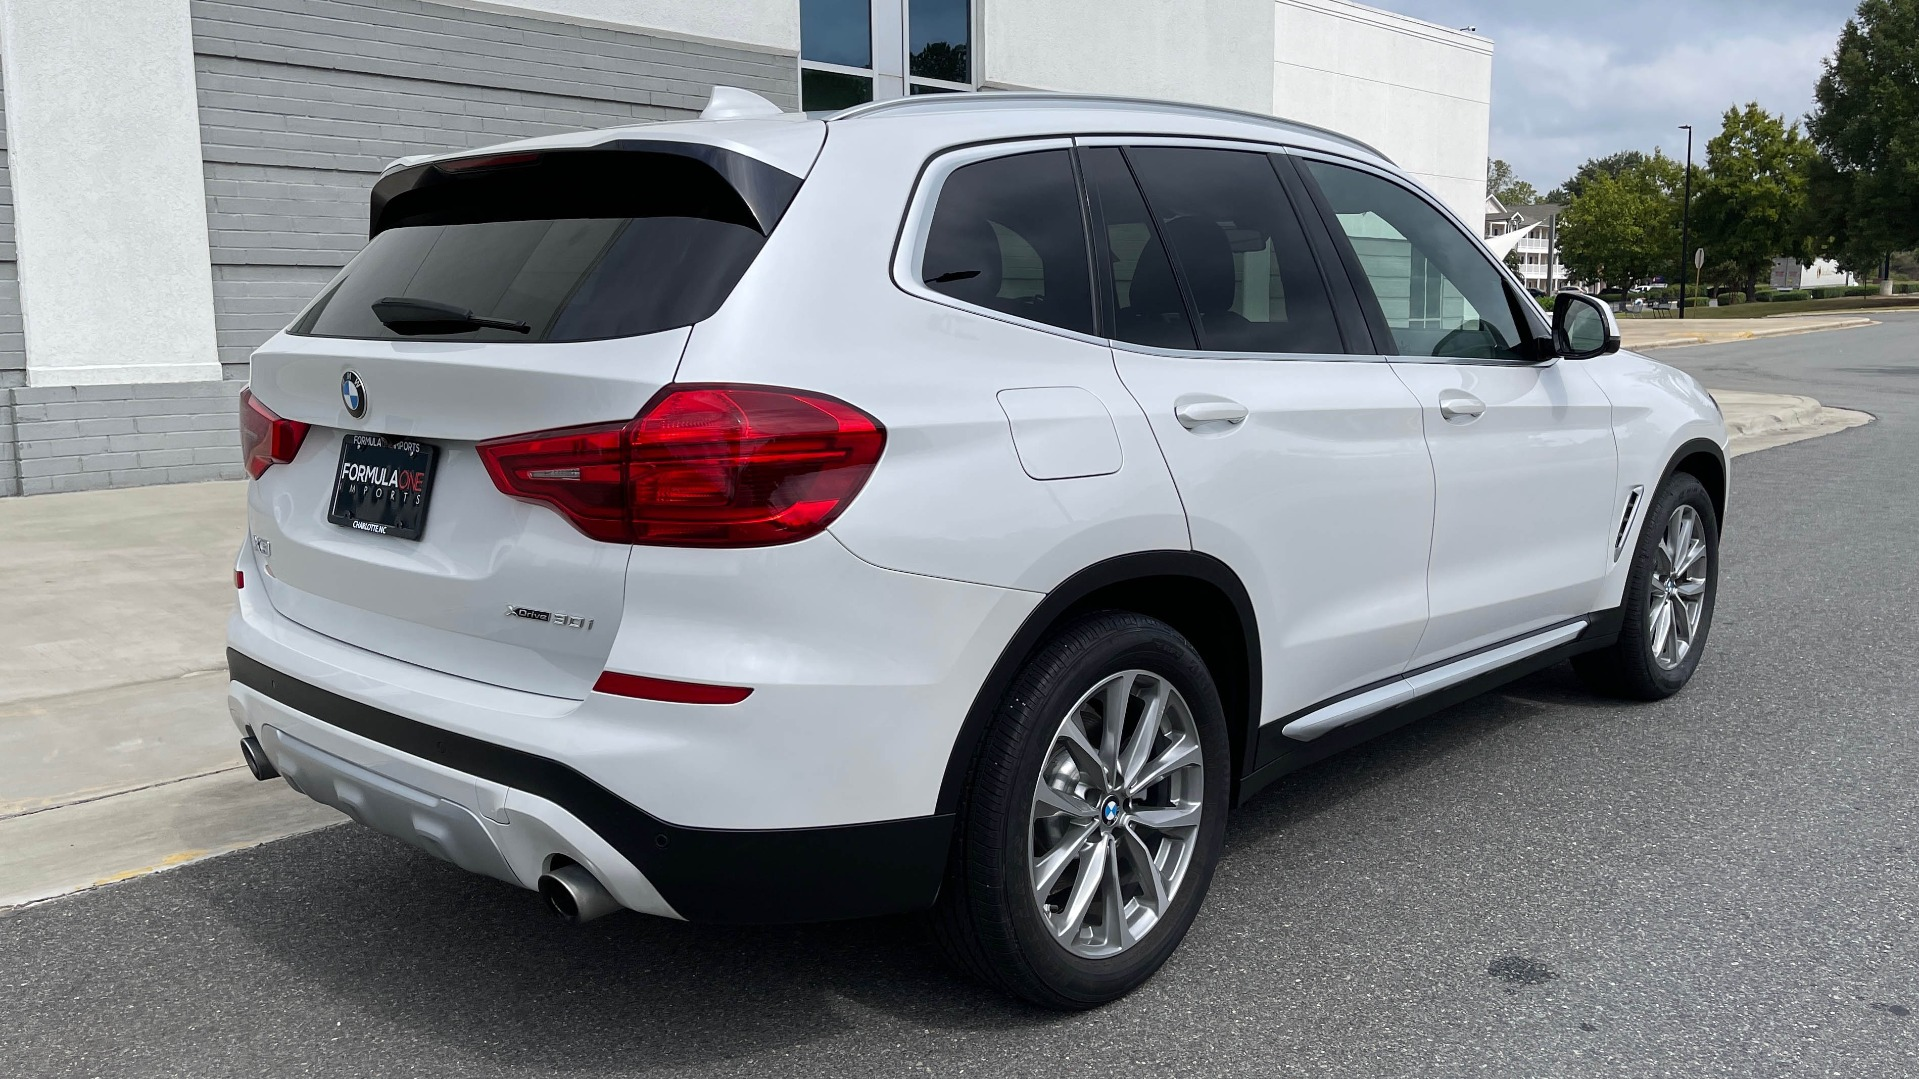 Used 2018 BMW X3 XDRIVE30I / NAV / PANO-ROOF / HTD STS / PARK DIST CNTRL / REARVIEW for sale $38,995 at Formula Imports in Charlotte NC 28227 7